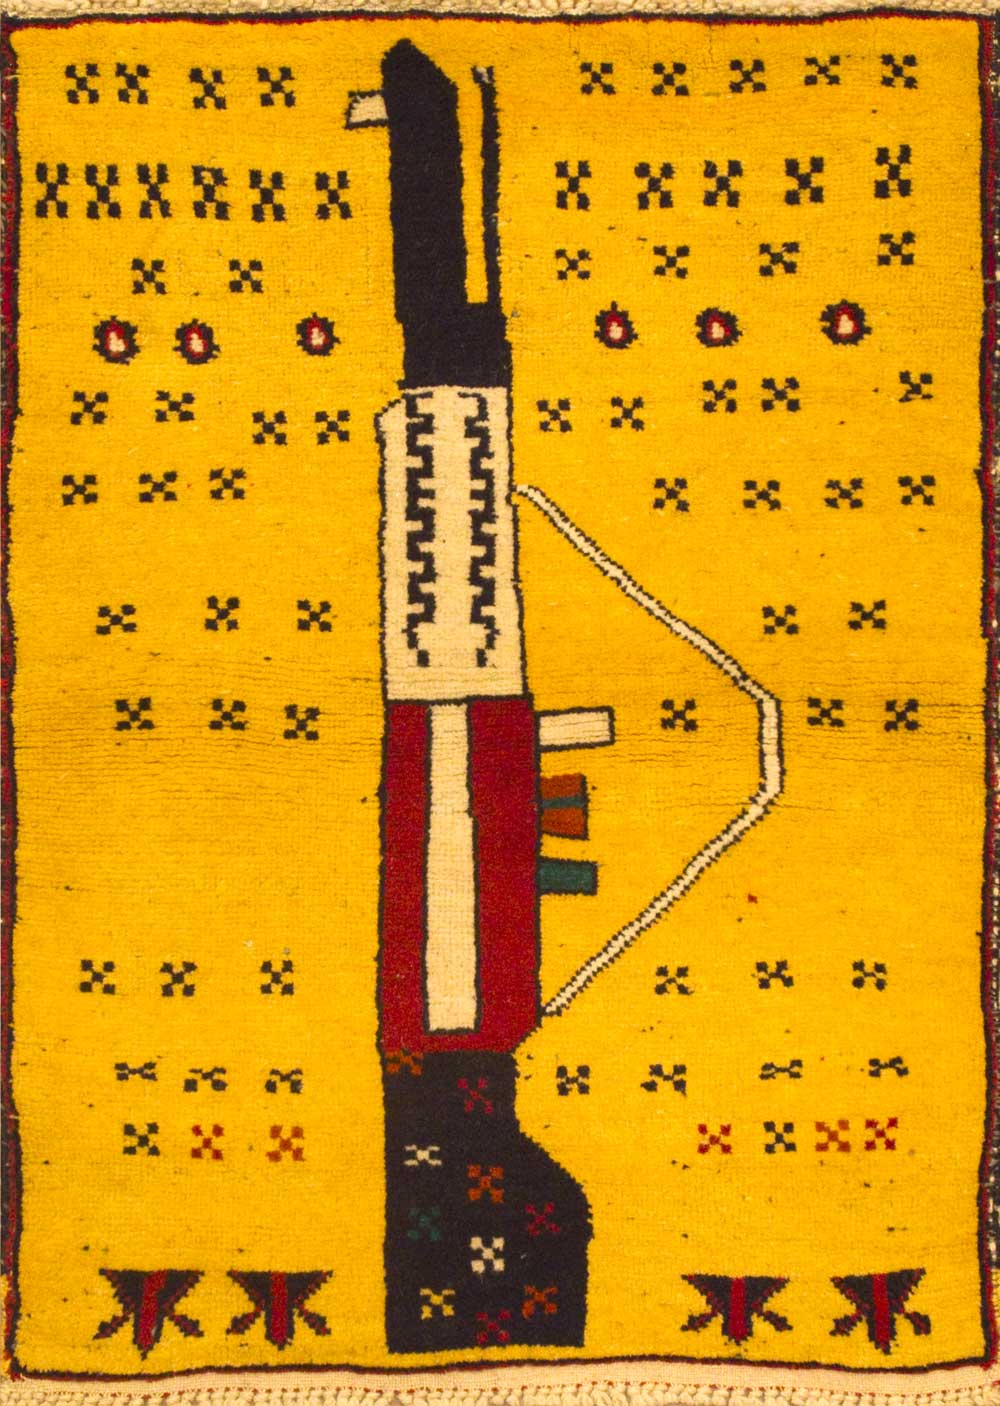 Afghan War Rug, 1980s. The First Production Of War Rugs, Subsequent Soviet  Occupation